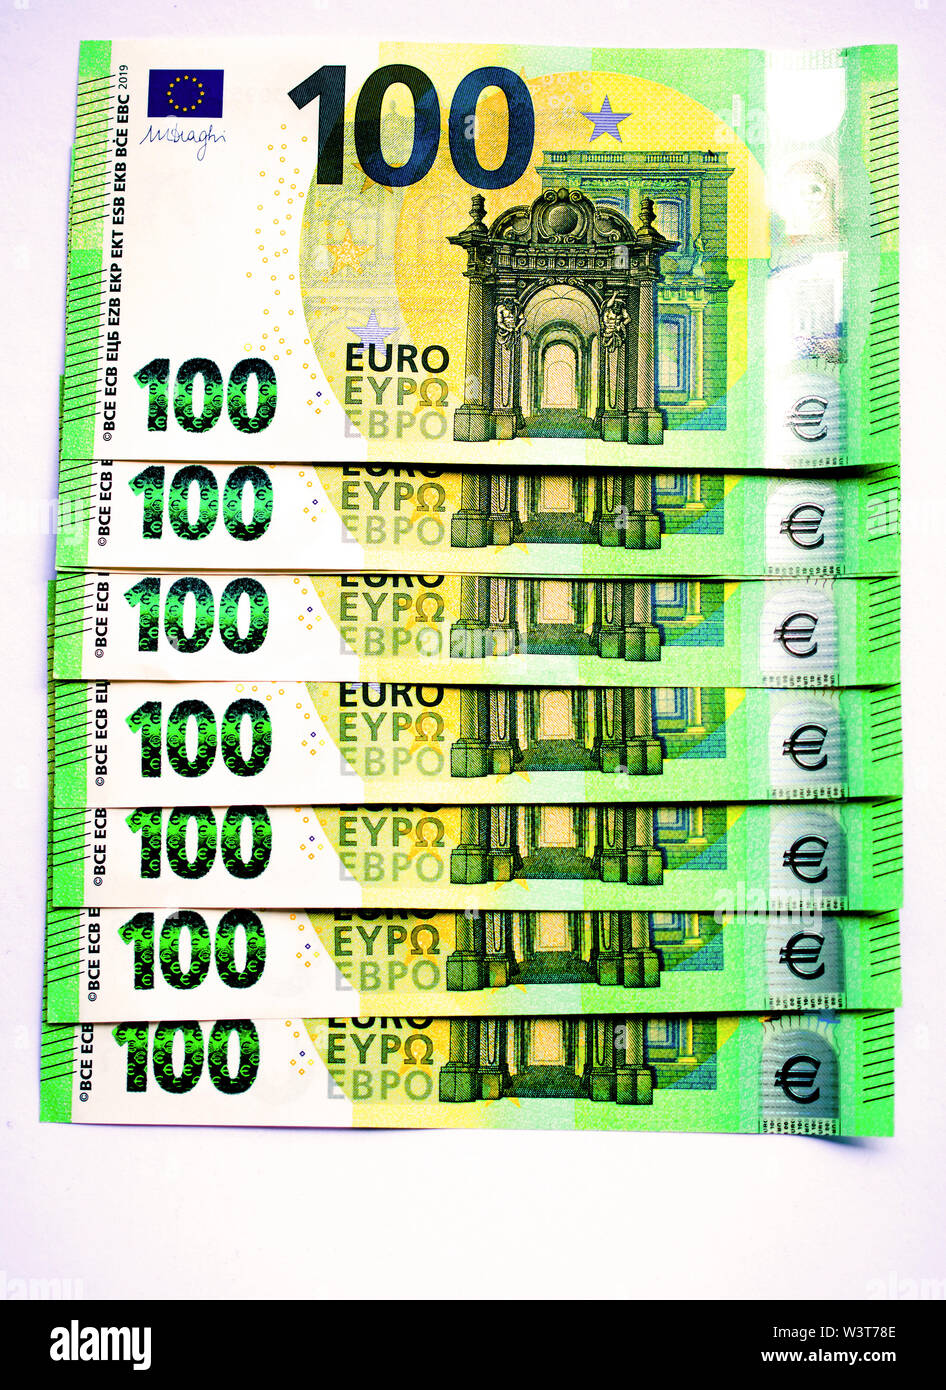 New 100 euro banknotes. Perfect good luck pictures, images and photos. - Stock Image